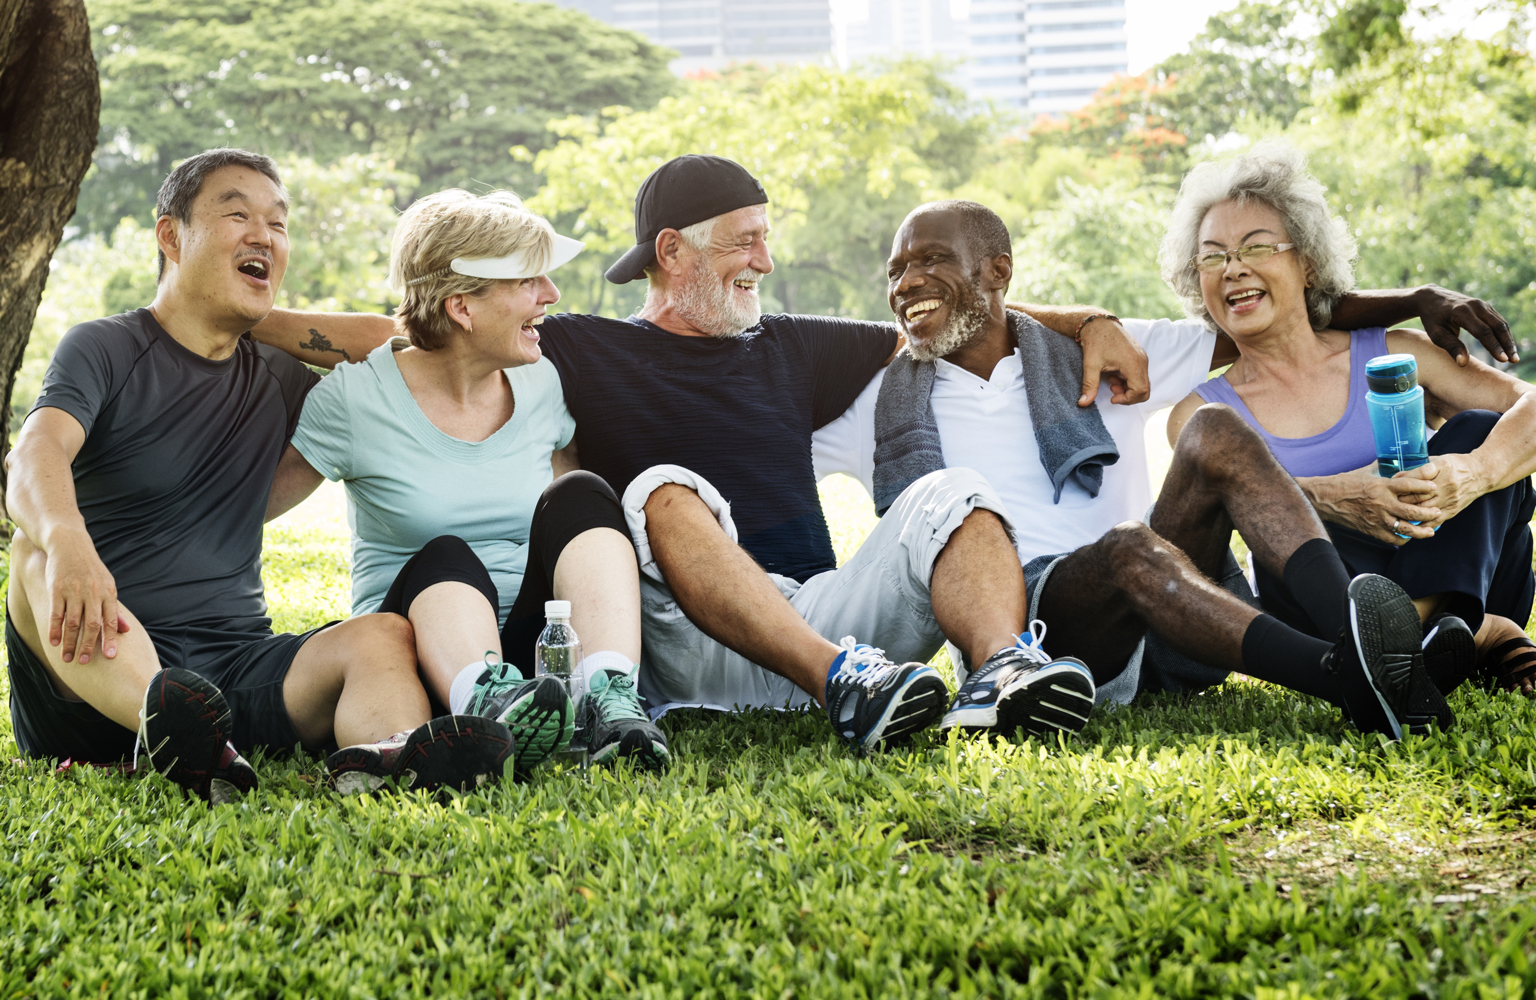 Social Connections & Your Health - Keeping Strong Social Relationships Can Help Improve Your Overall Mental Health